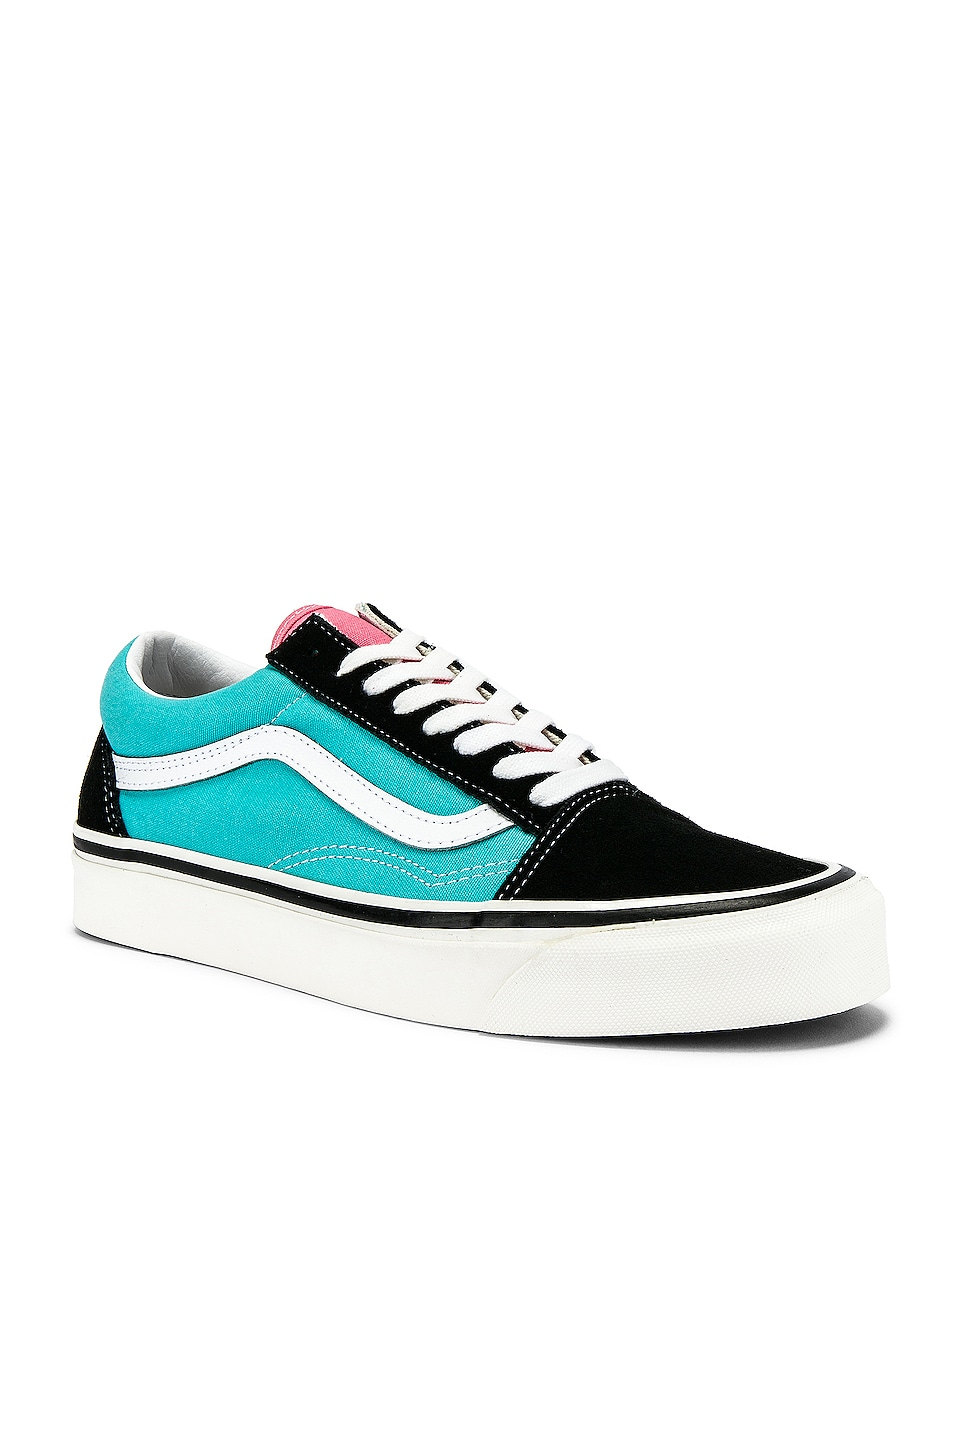 Vans Old Skool 36 DX in OG Black & OG Aqua